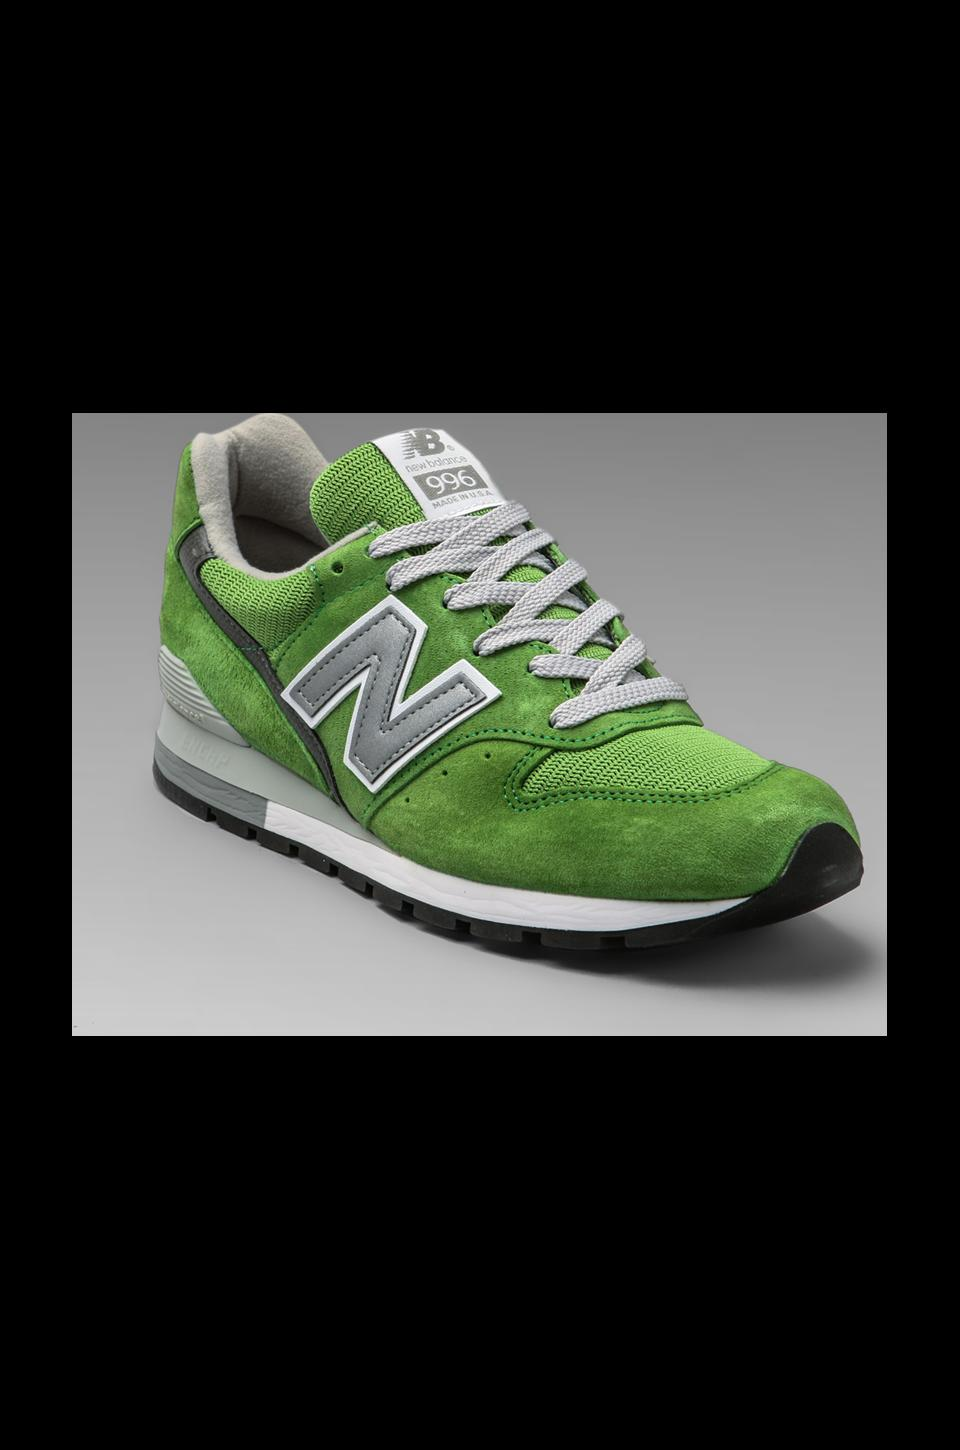 New Balance Made in the USA Classic M996 in Green